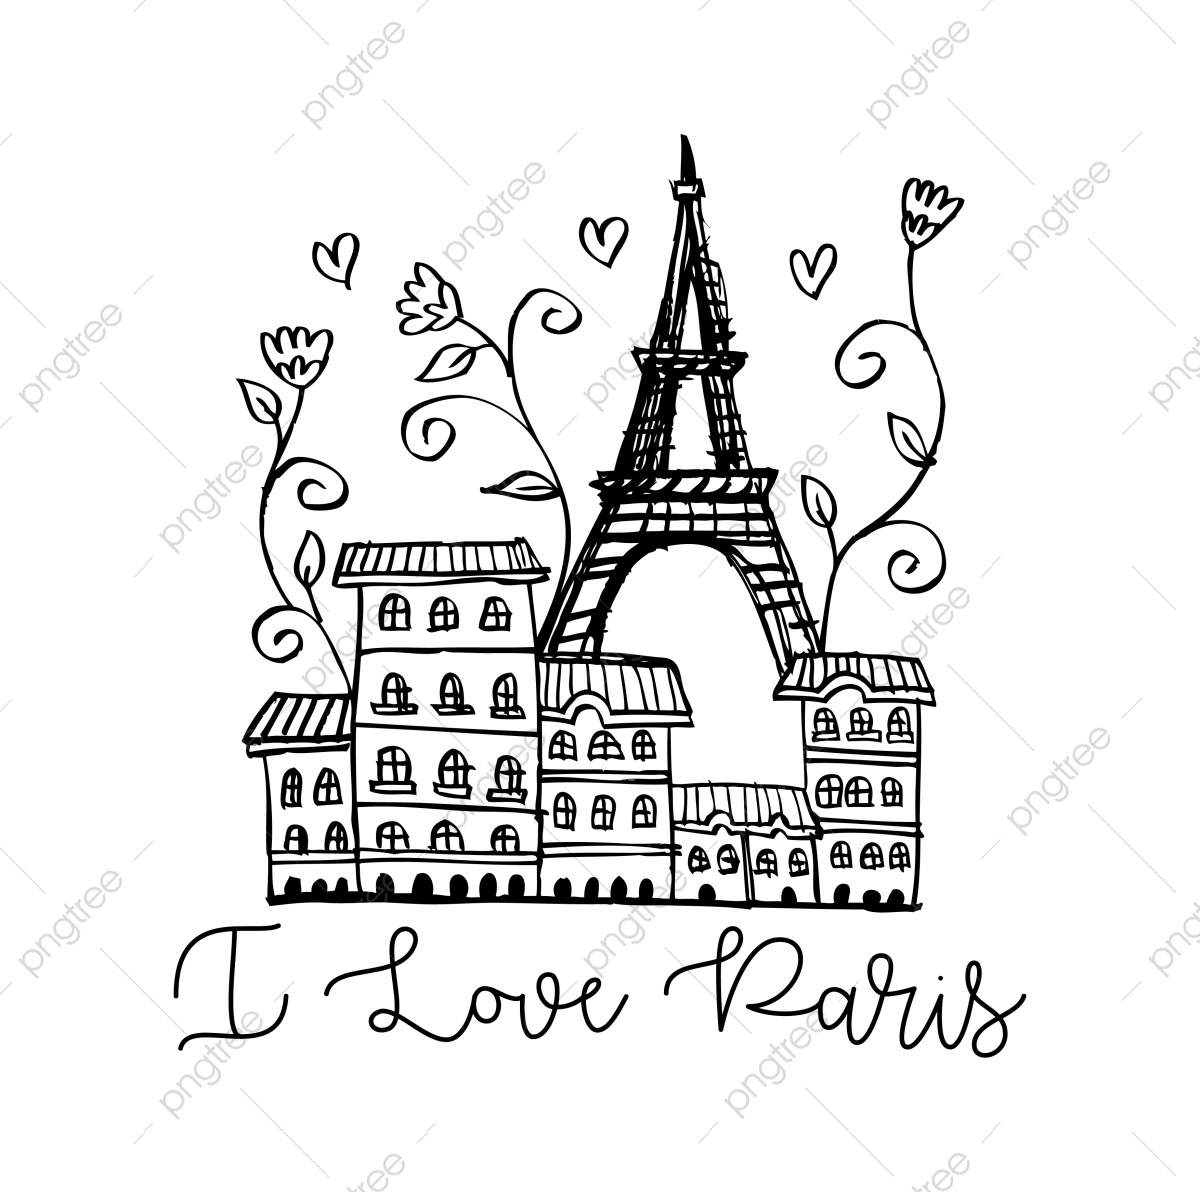 Drawing The Silhouette Of The City Of Paris Vector Europe French Png And Vector With Transparent Background For Free Download